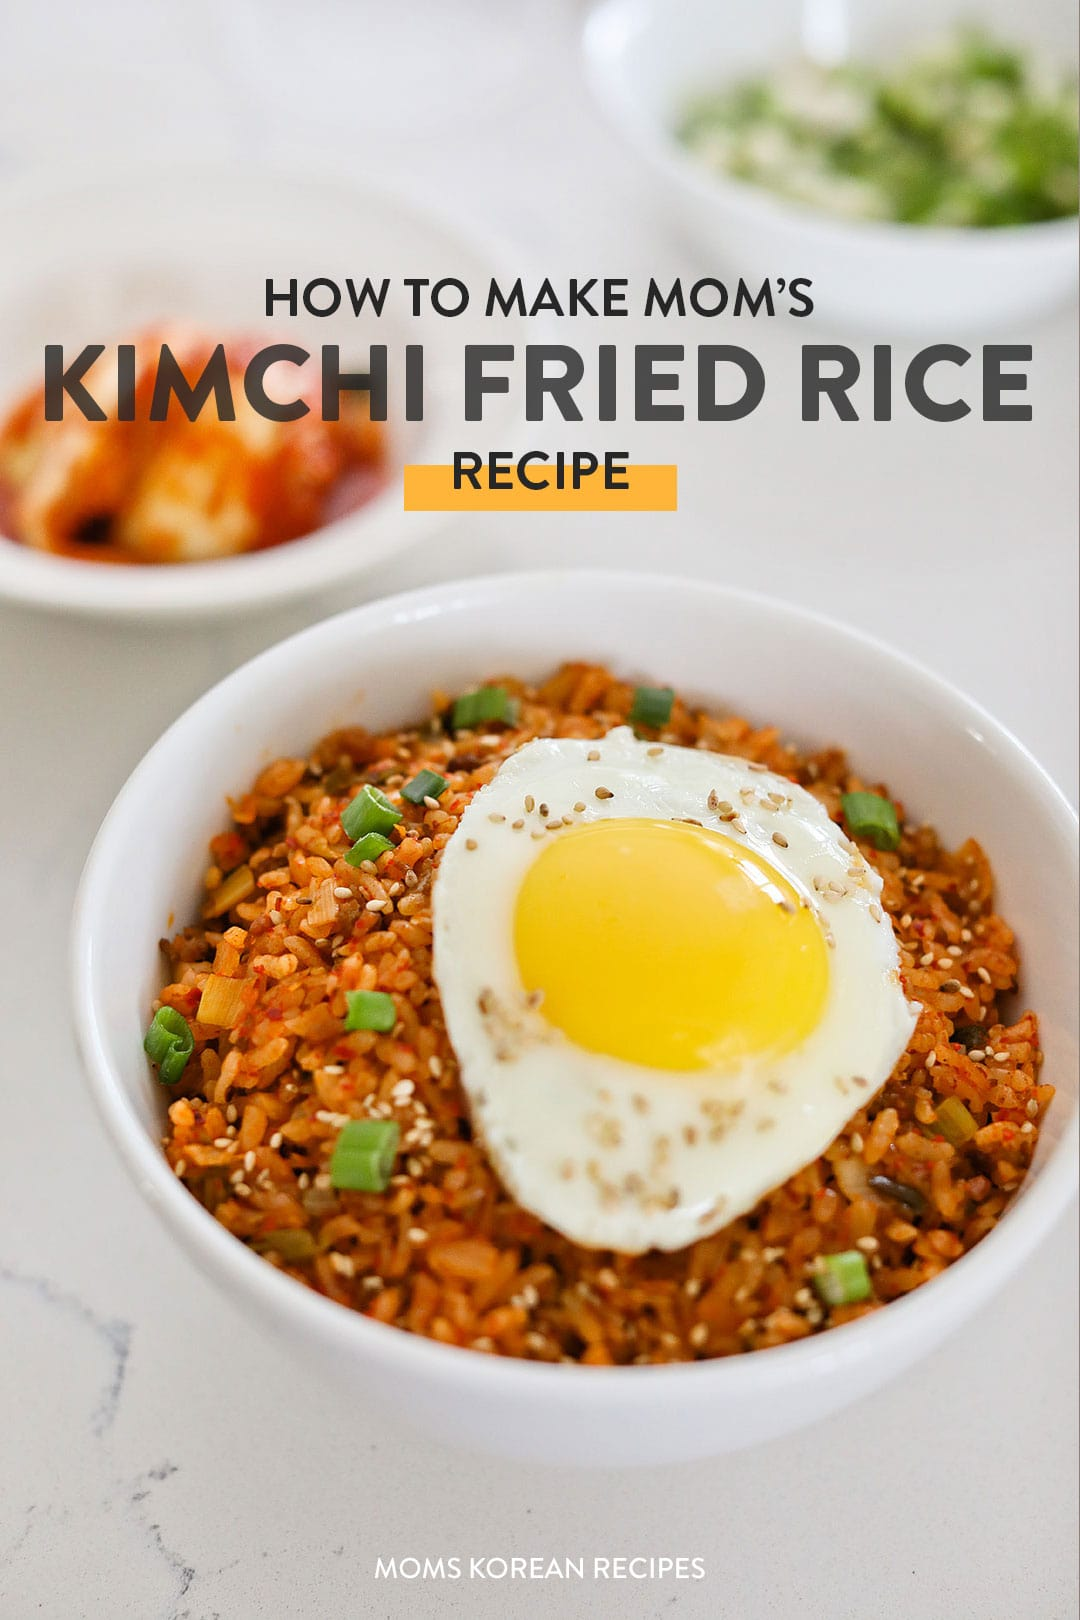 How to Make Mom's Kimchi Fried Rice Recipe (김치 볶음밥 레시피)